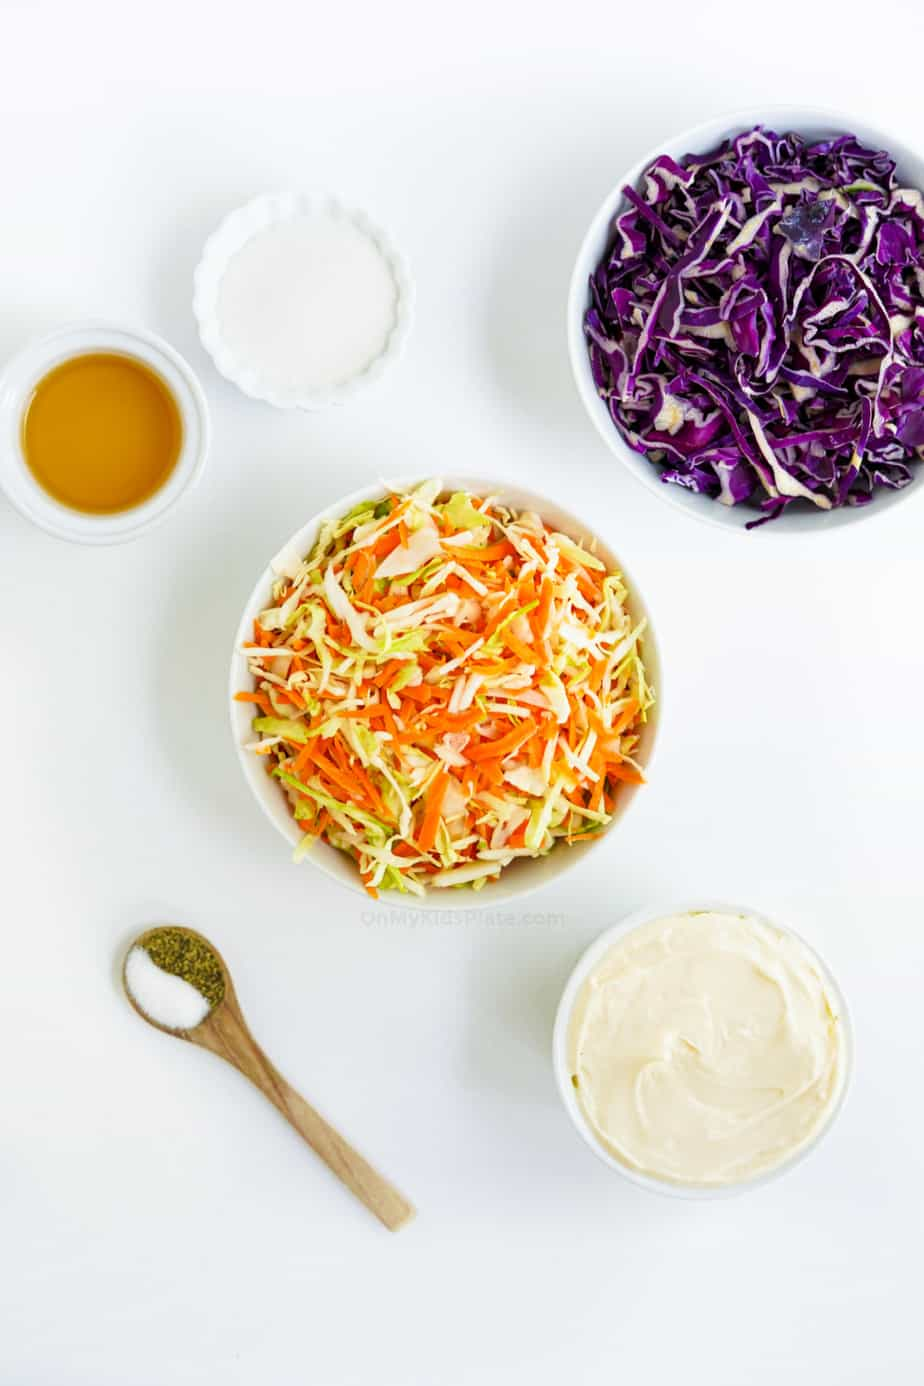 Ingredients for coleslaw from overhead in bowls